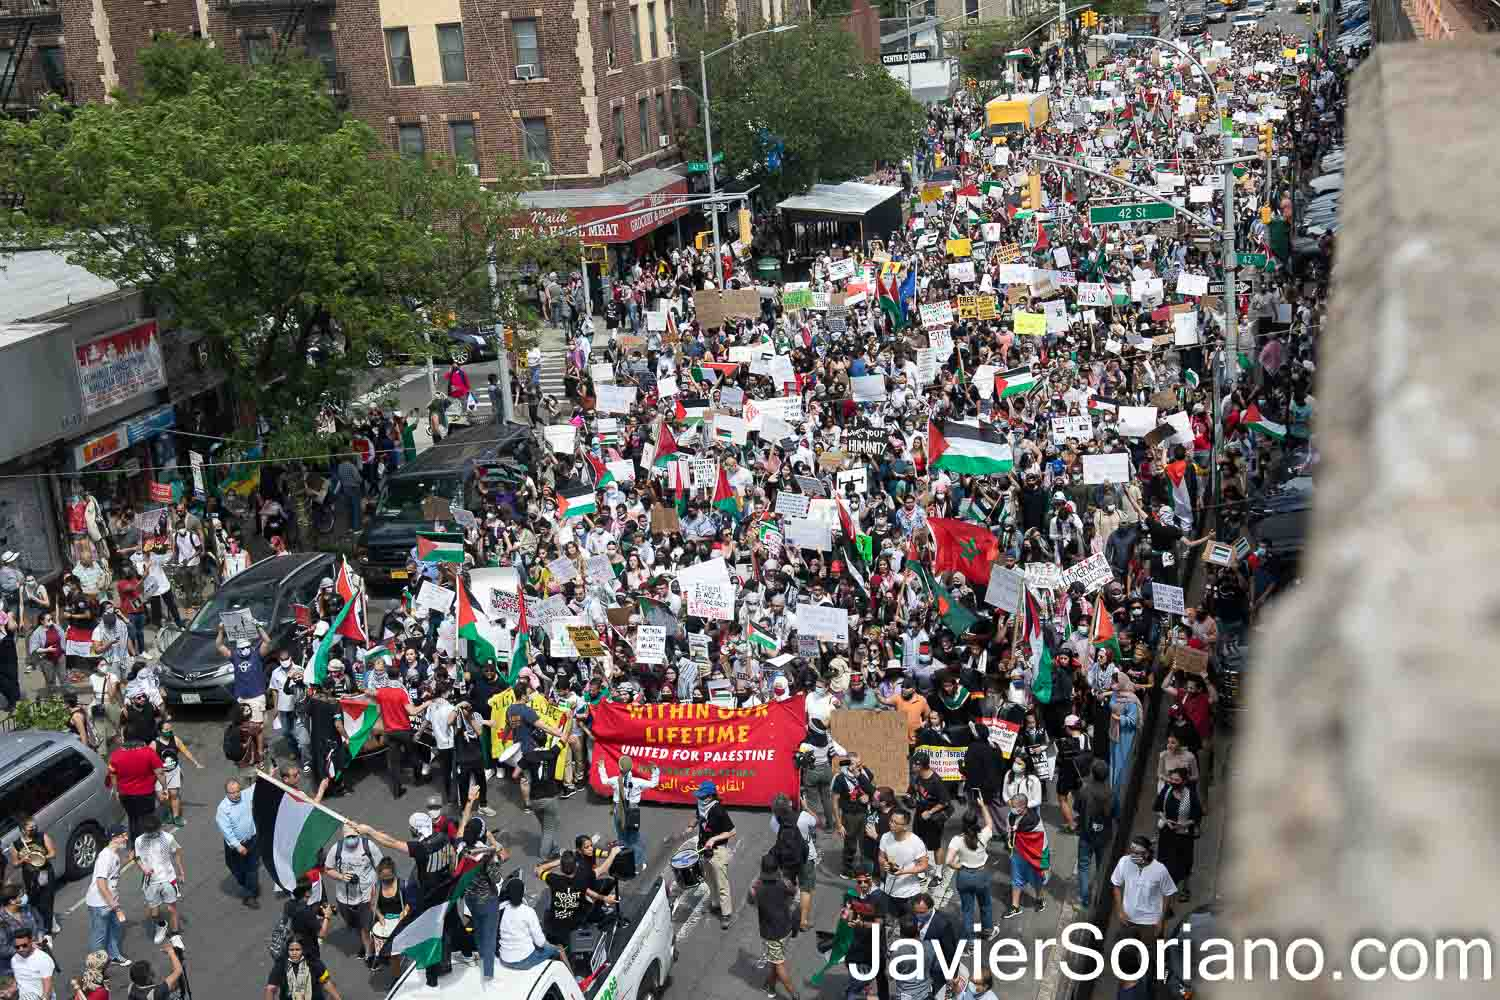 Saturday, May 22, 2021. New York City - Thousands of anti-zionist Palestinians, Jews, Native Americans, Latinas, Latinos, Blacks, Asians, and others rallied and marched to DEFEND PALESTINE. Demonstrators gathered at Queens BLVD and 45 Street in the borough of Queens. After the rally, they marched to Astoria, Jackson Heights, etc. in the same borough of Queens. Photo by Javier Soriano/www.JavierSoriano.com